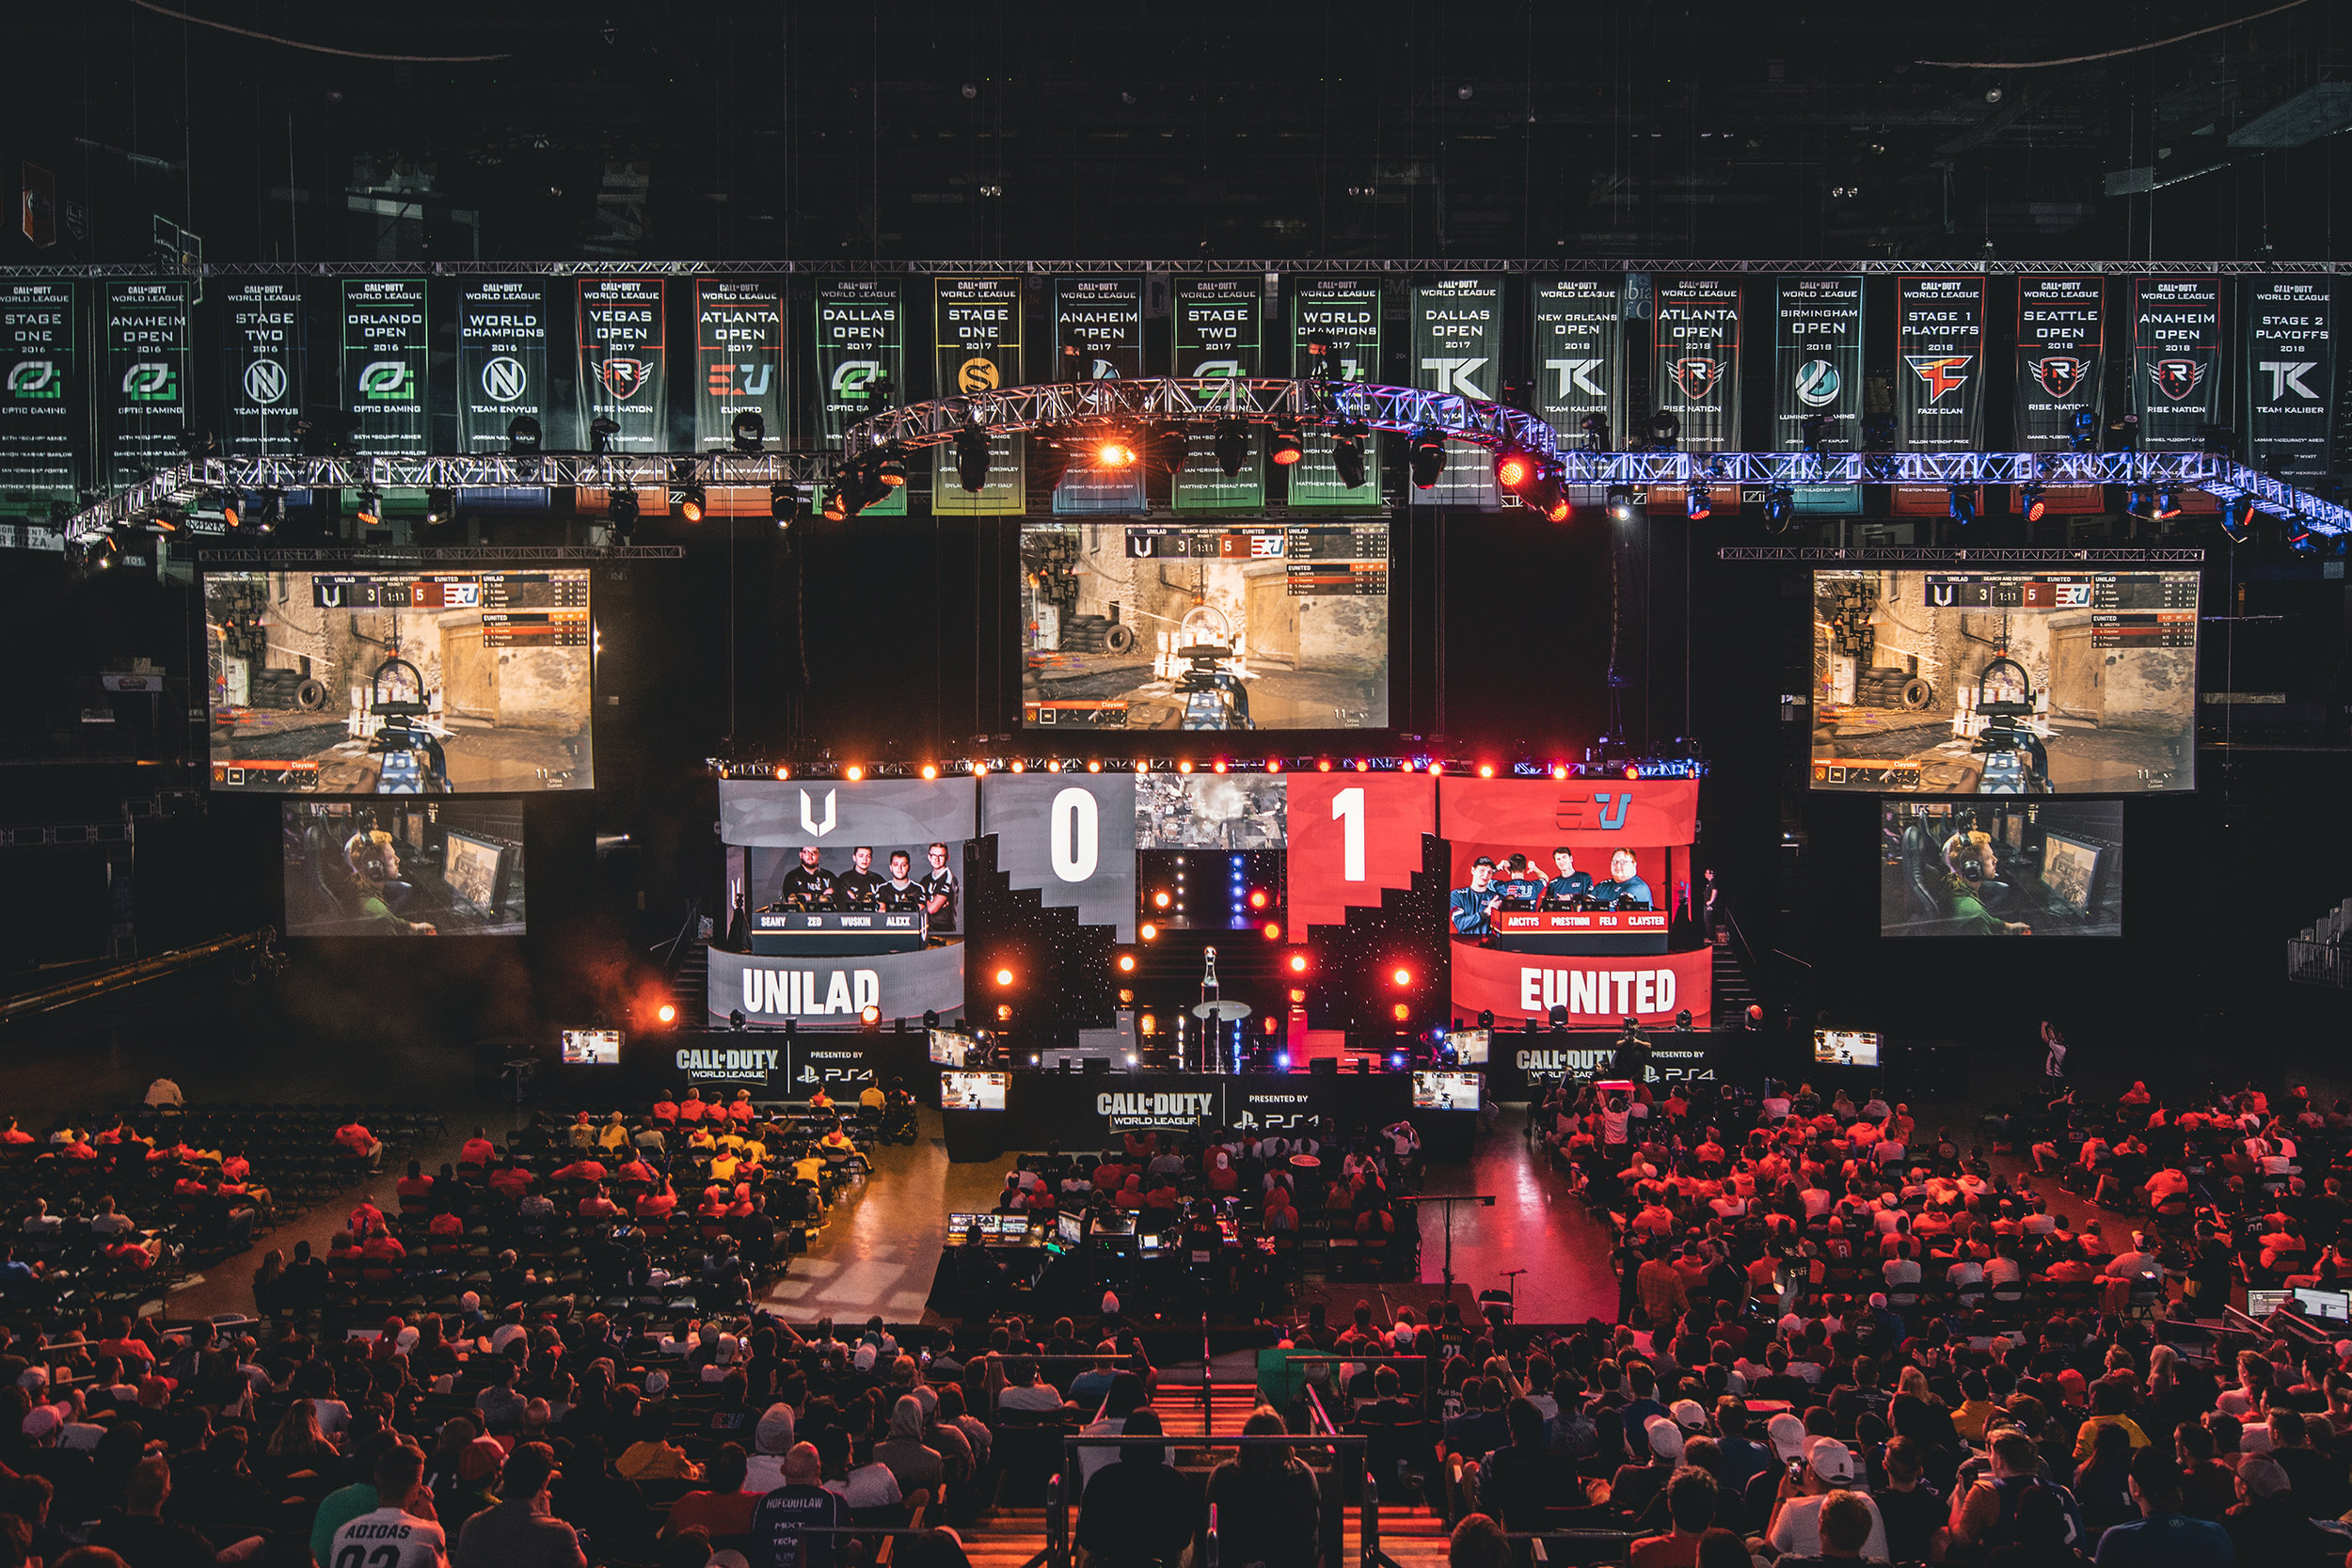 Team Unilad vs Eunited battling at 2018 Call of Duty World League Championship at Nationwide Arena on August 18, 2018 in Columbus, Ohio.  Photo by Eric Ananmalay / ESPAT Media